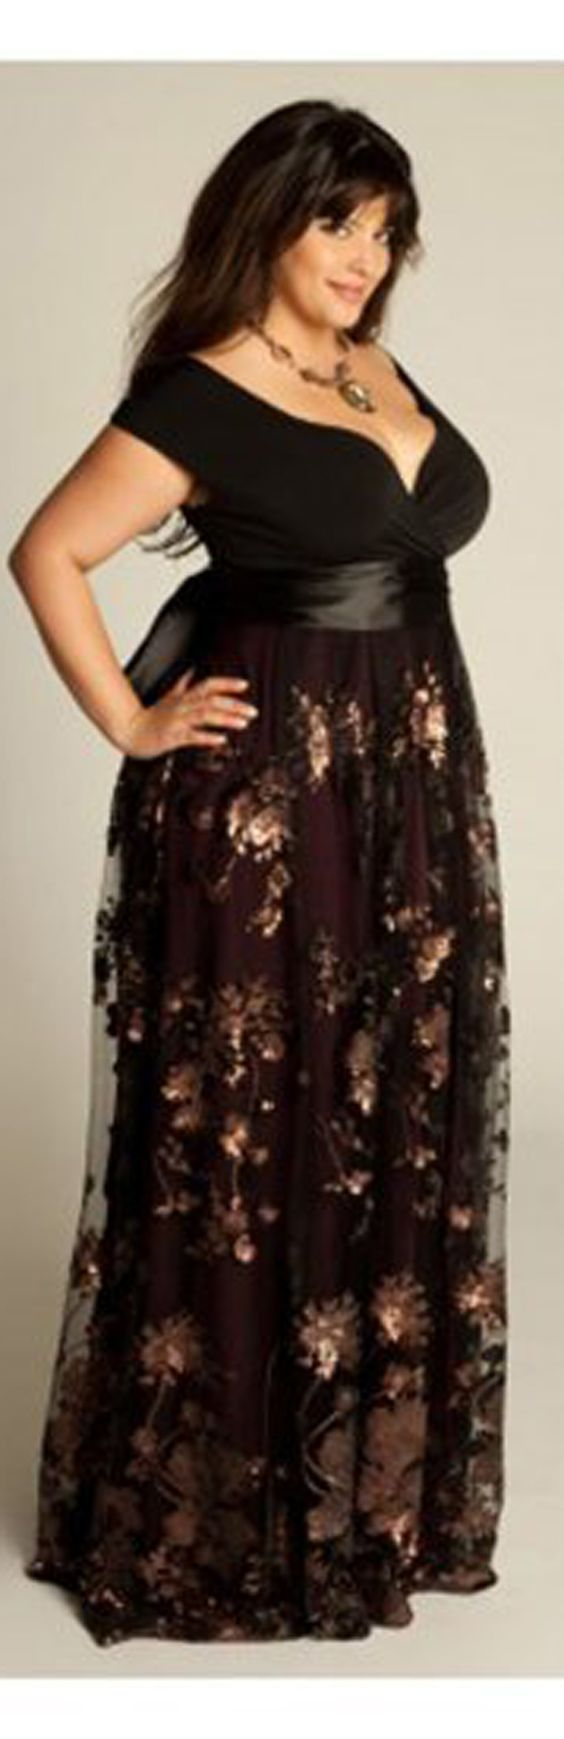 Dud wide sash plus size baroque dress perfect for formal night on